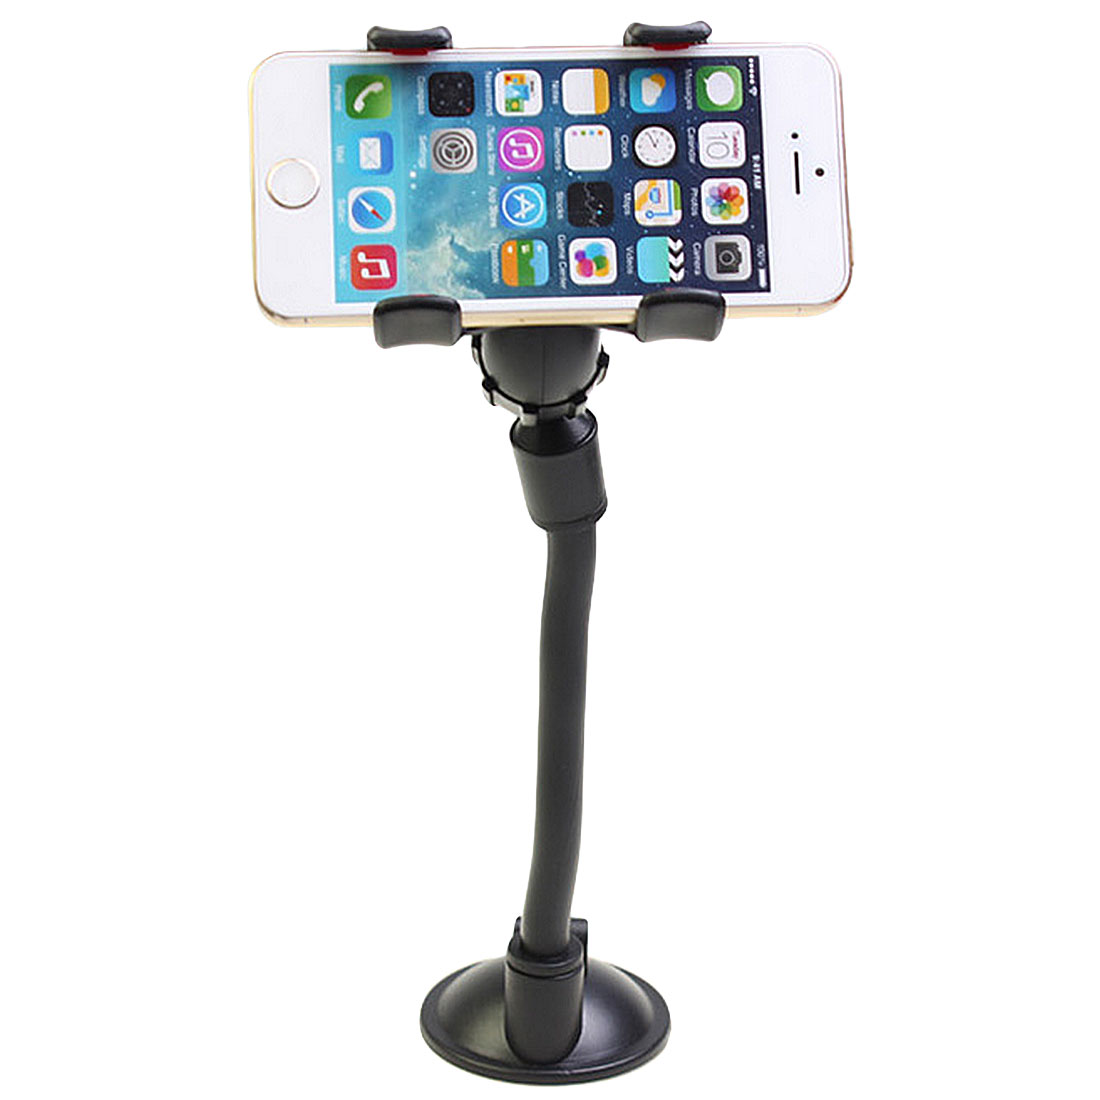 Dewtreetali Hot Sale Mobile Phone Mount holder with suction cup Multi-angle 360 Degree Rotating Clip Windshield Smartphone Car H h05 360 degree rotation suction cup holder w c46 mini back clip for iphone 4 4s 5 black